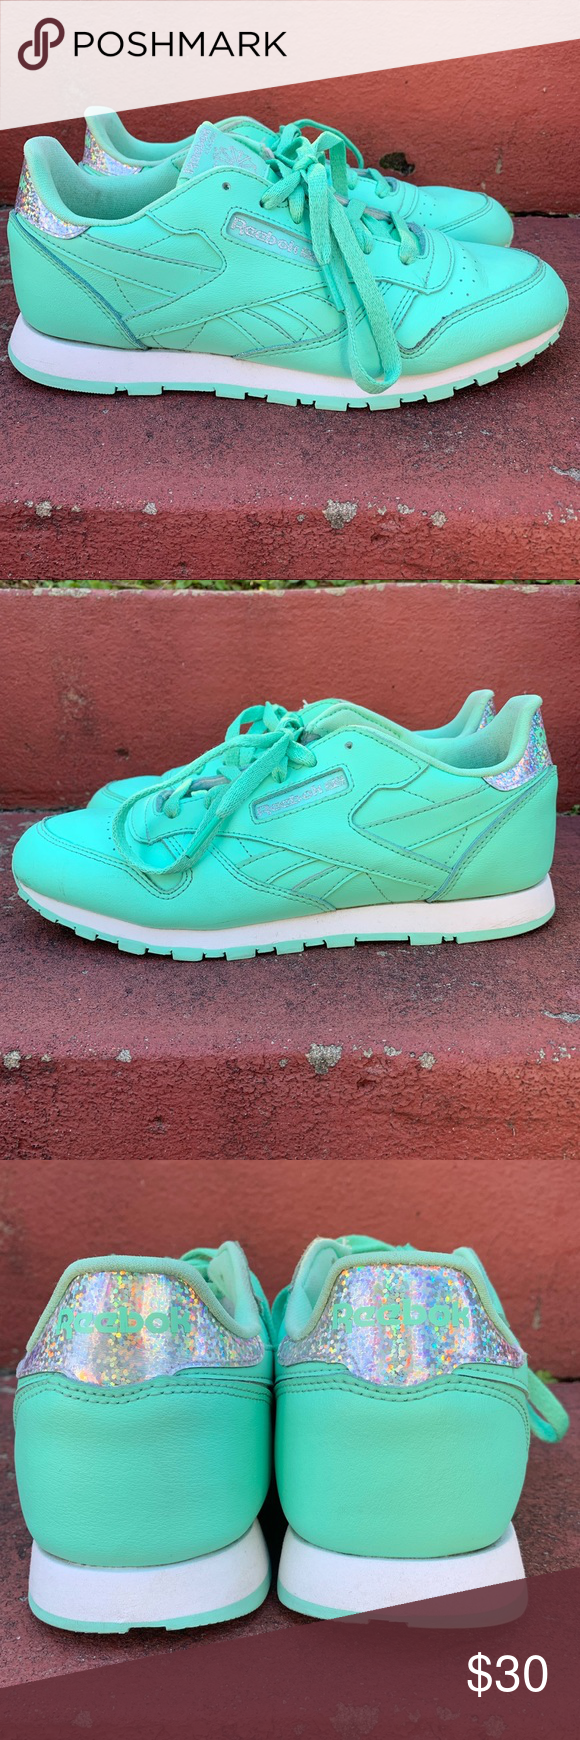 Reebok Reebok Classic Leather Pastel Sneaker. Gently used